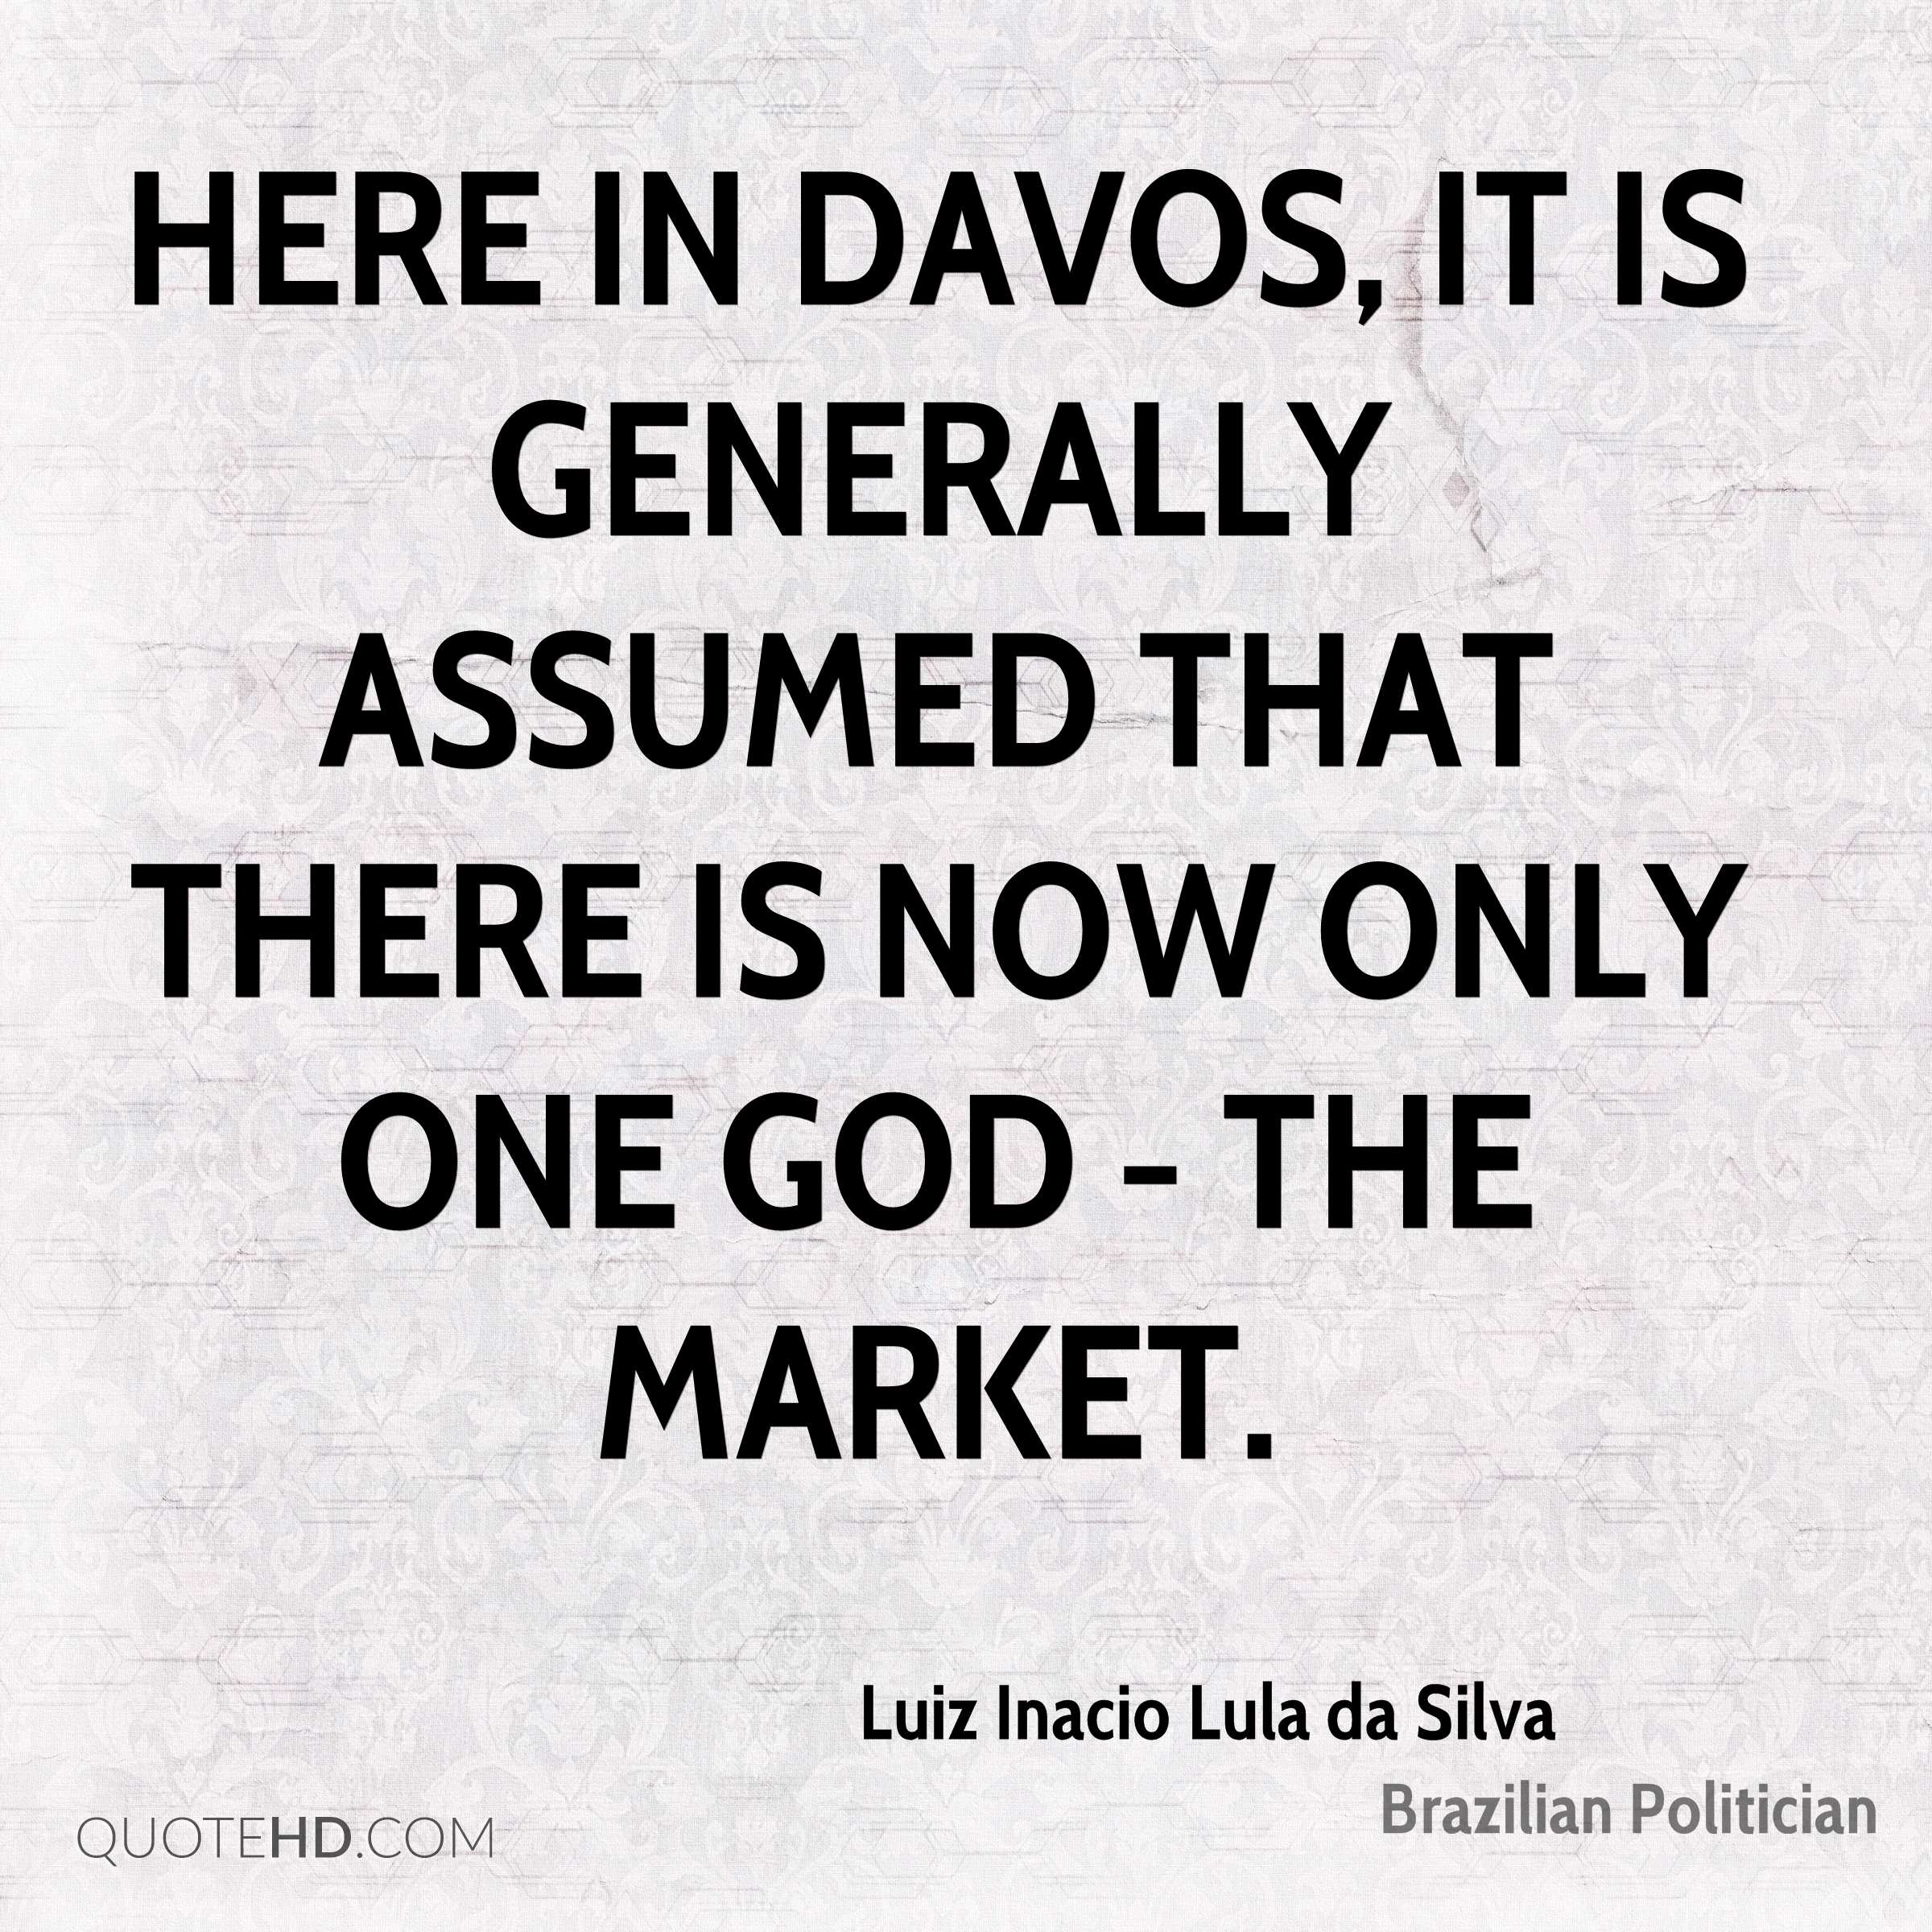 Here in Davos, it is generally assumed that there is now only one god - the market.